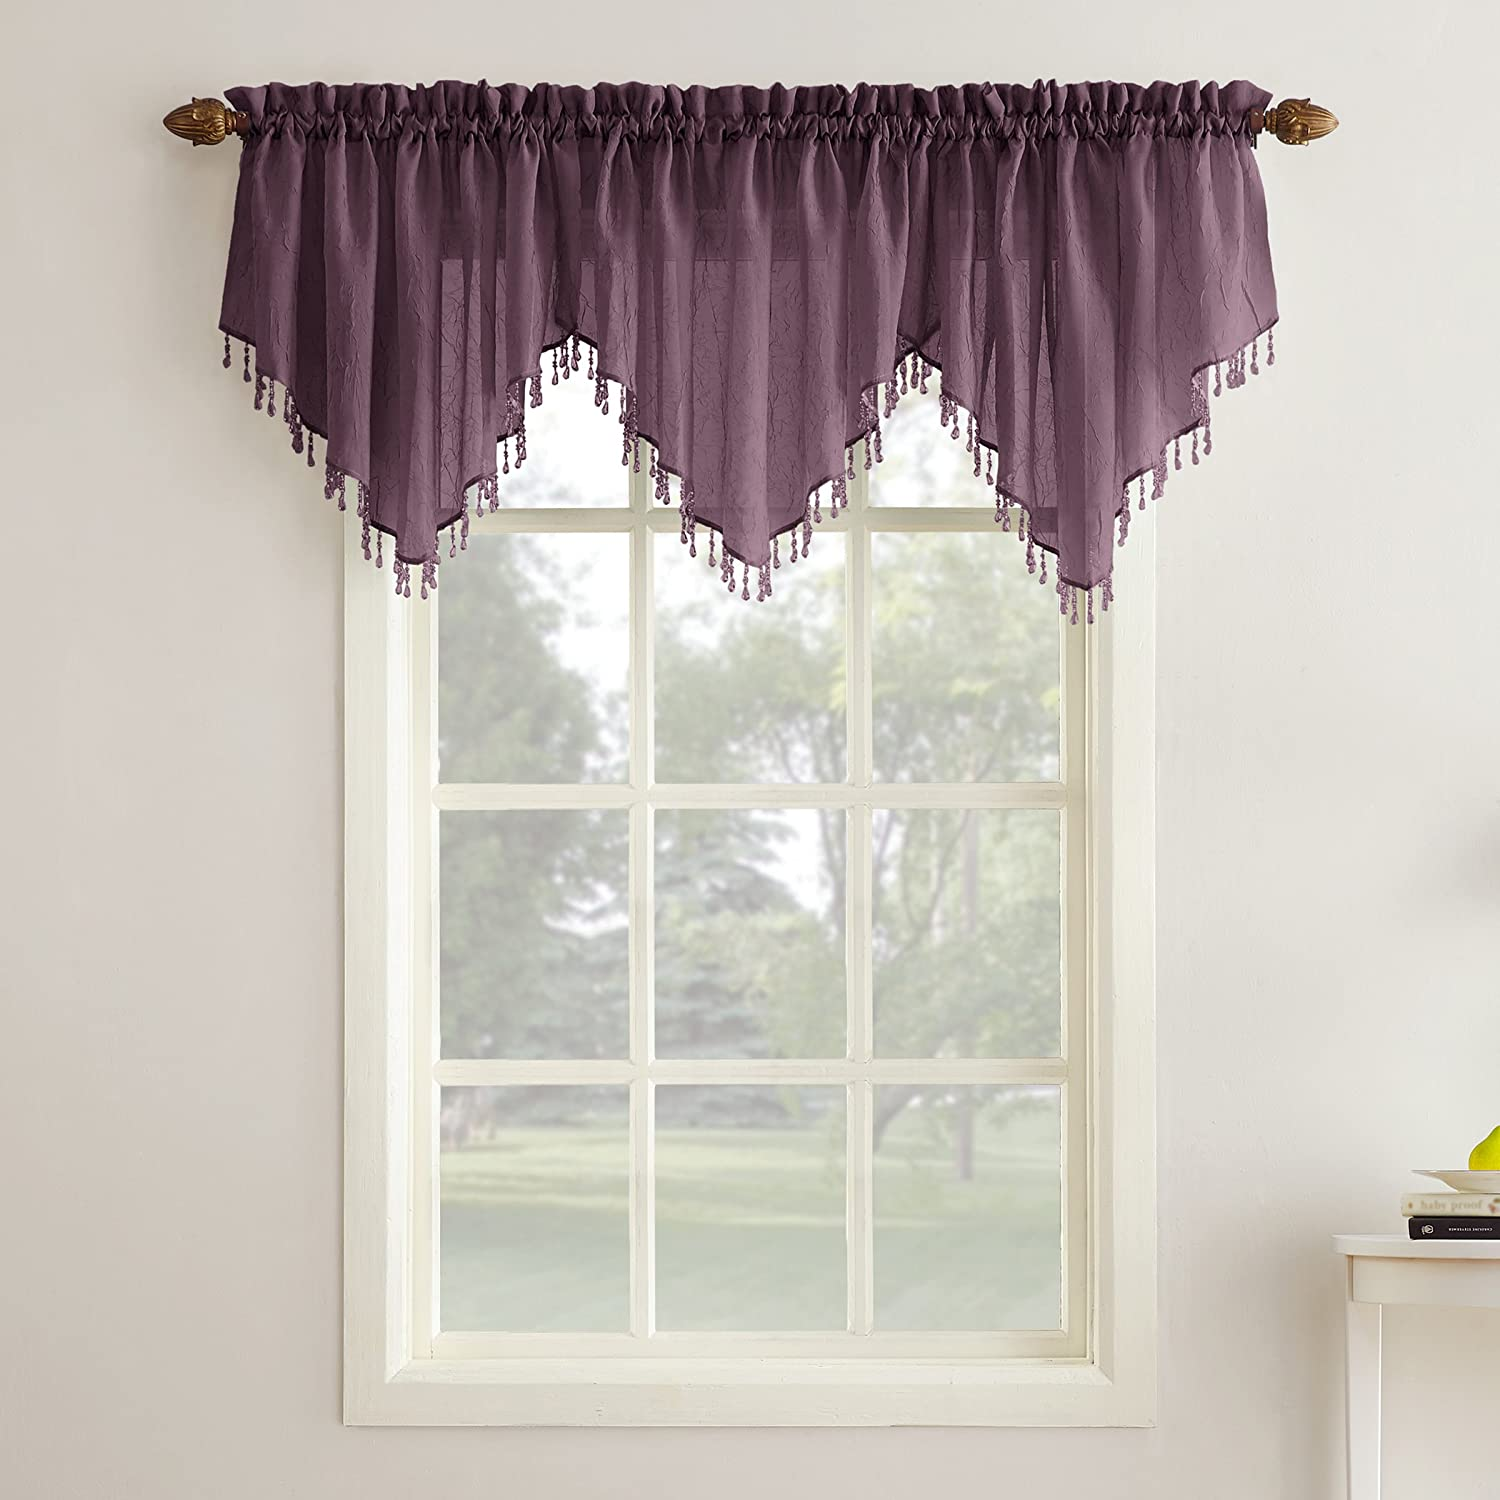 """No. 918 Erica Crushed Texture Sheer Voile Beaded Ascot Rod Pocket Curtain Valance, 51"""" x 24"""", Purple"""